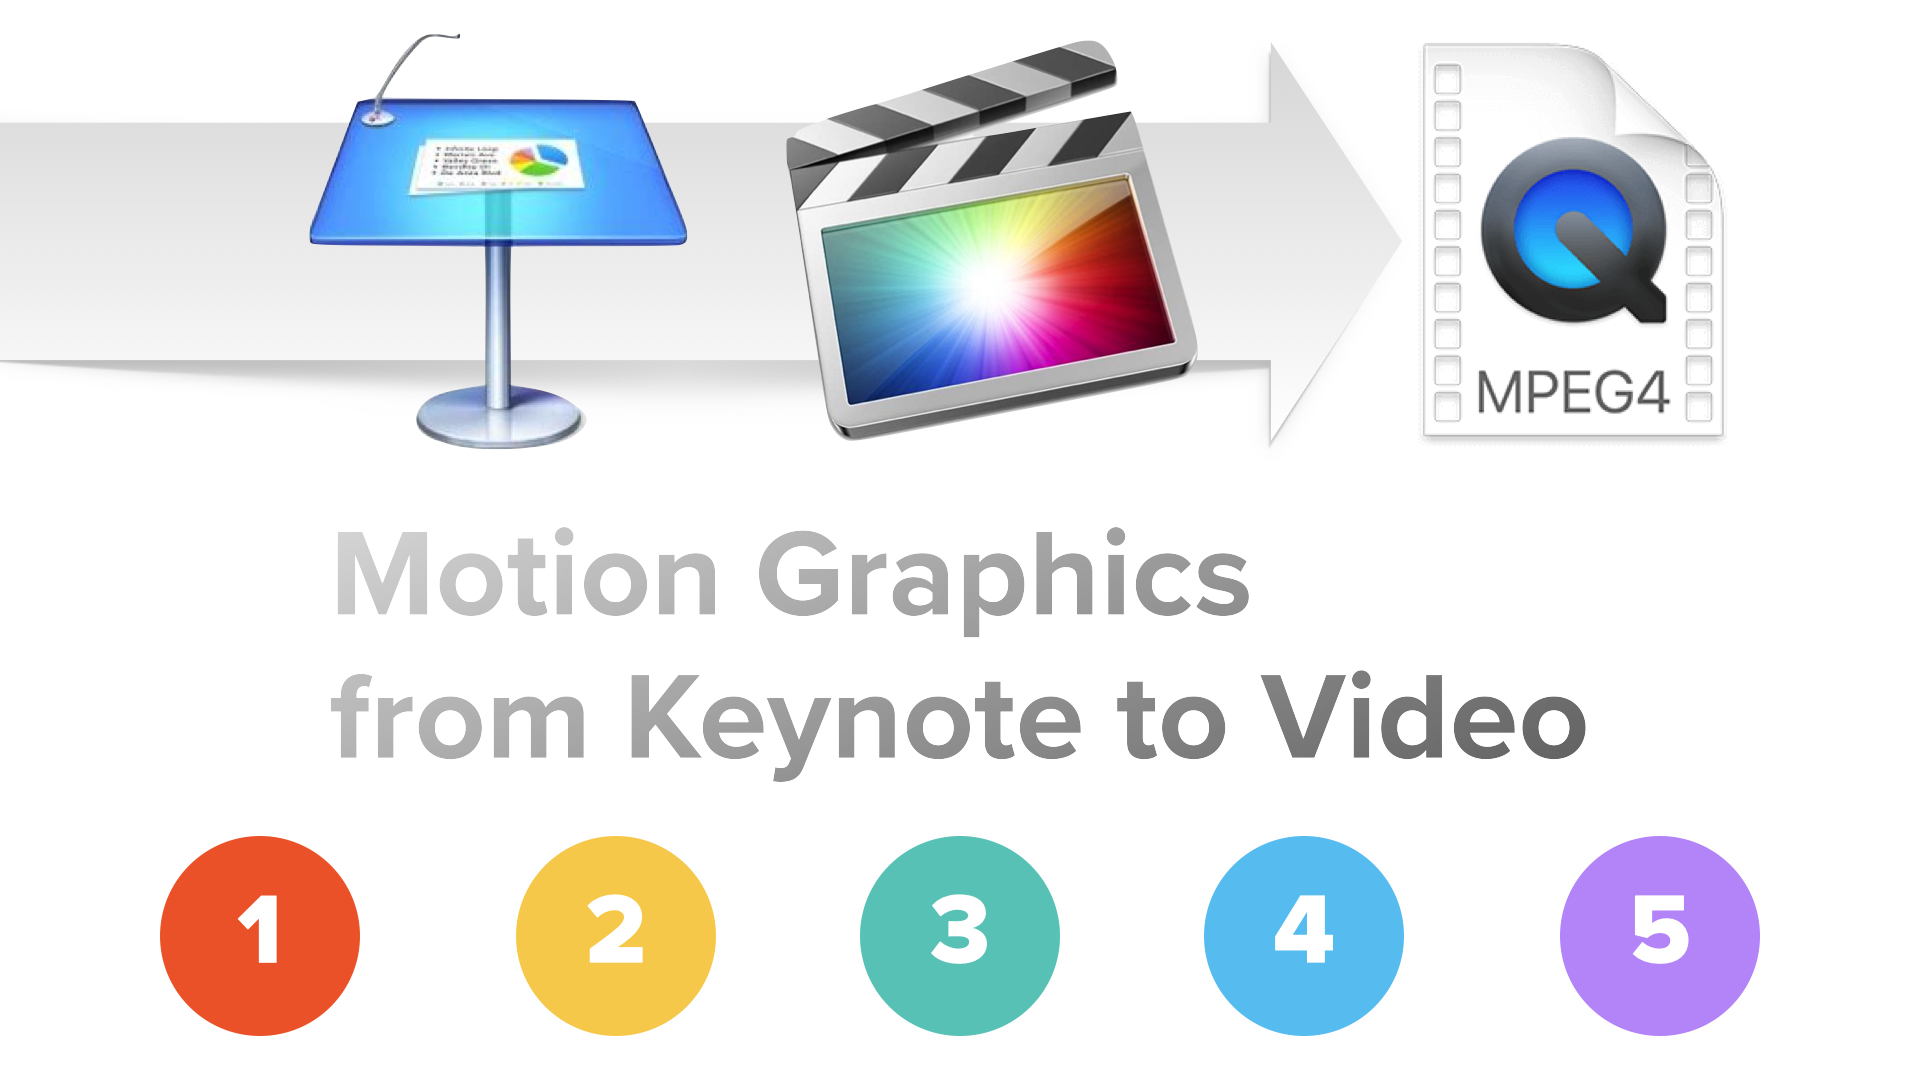 Motion Graphics from Keynote to Video